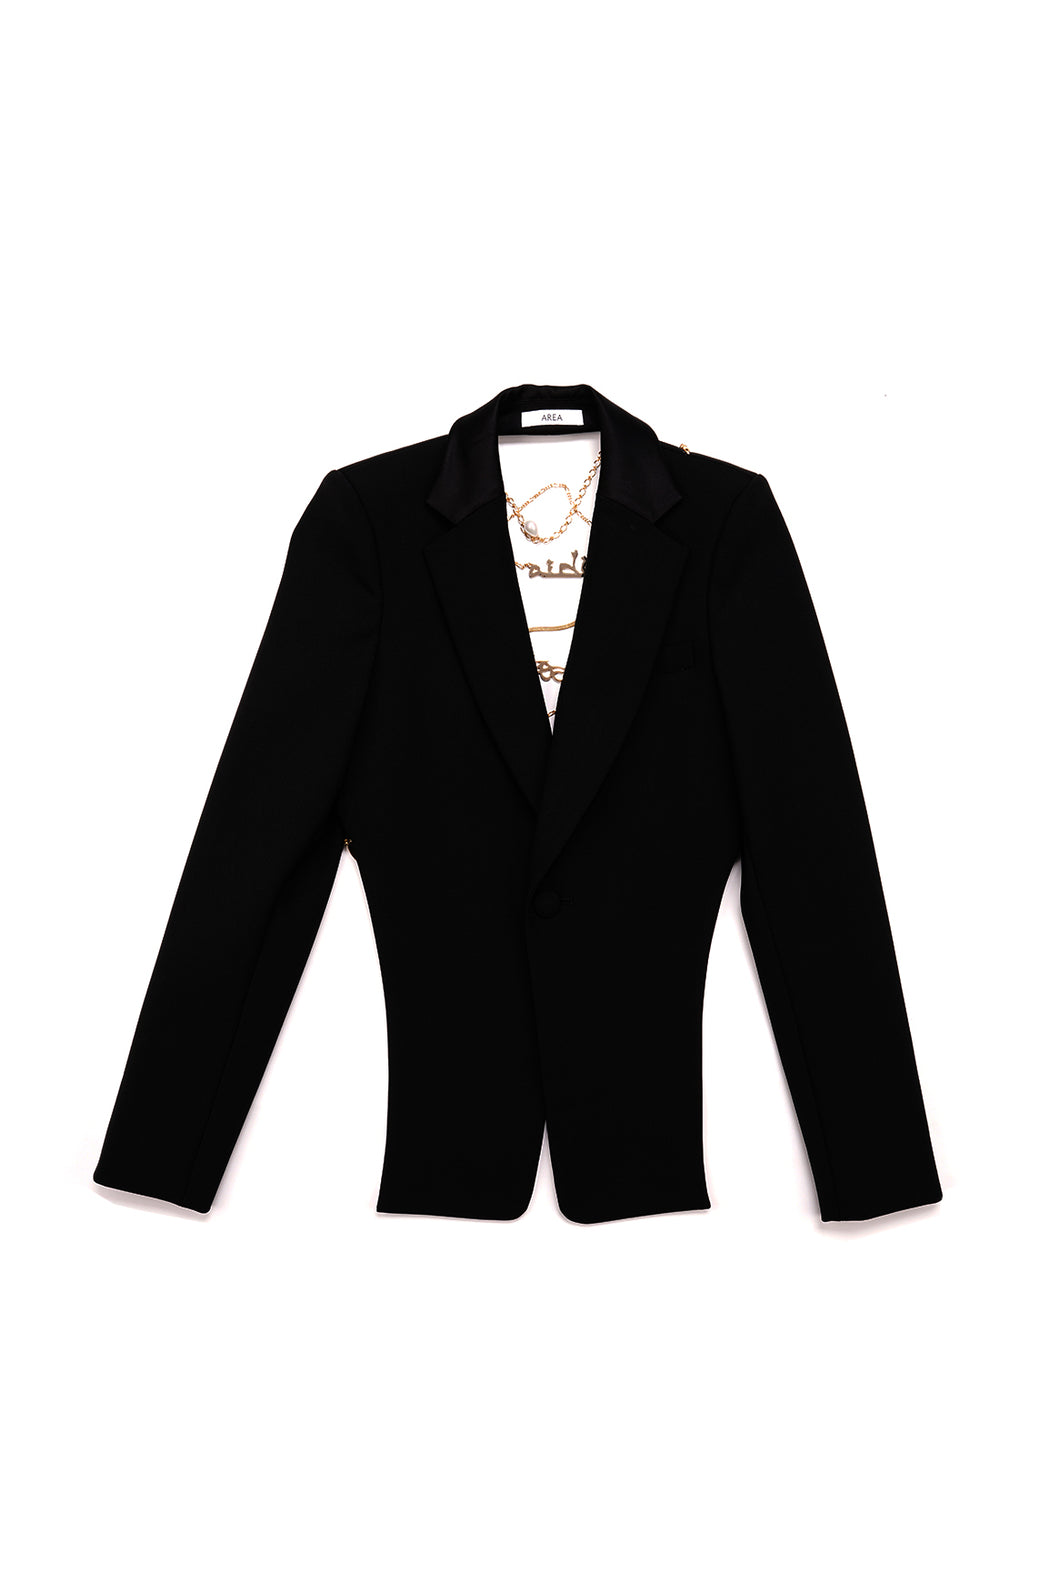 Open Back Blazer with Name Chain - Black